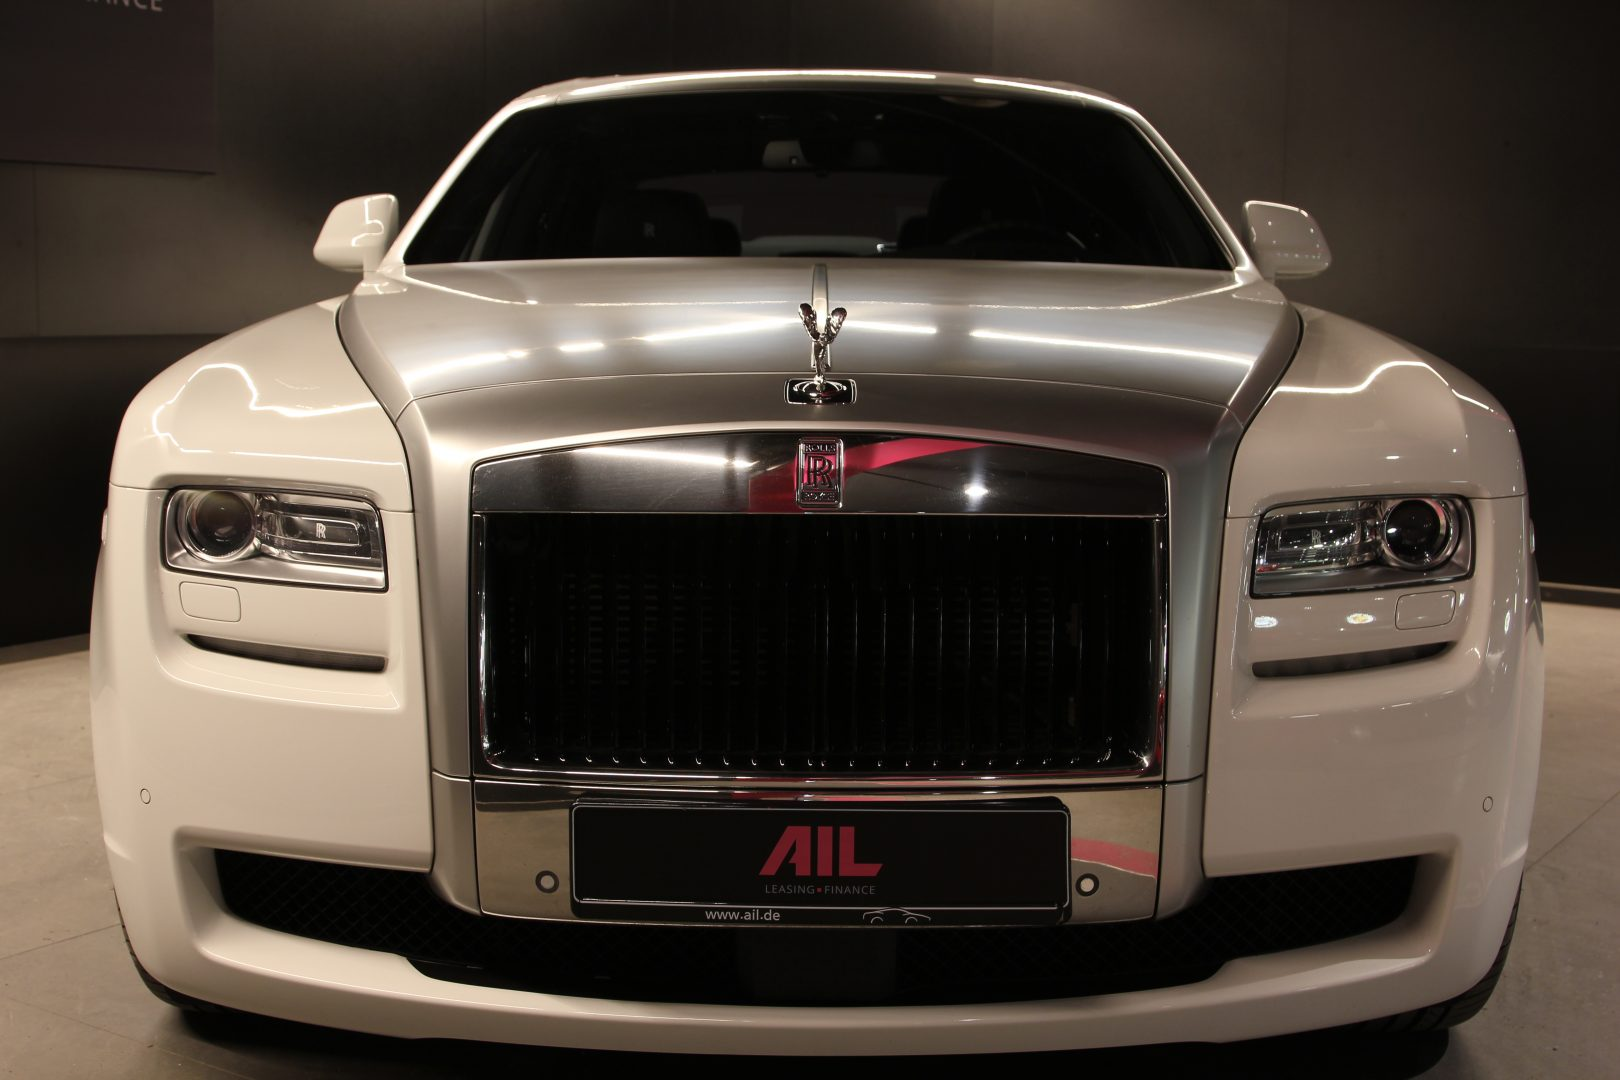 AIL Rolls Royce Ghost Alpine Trial 1